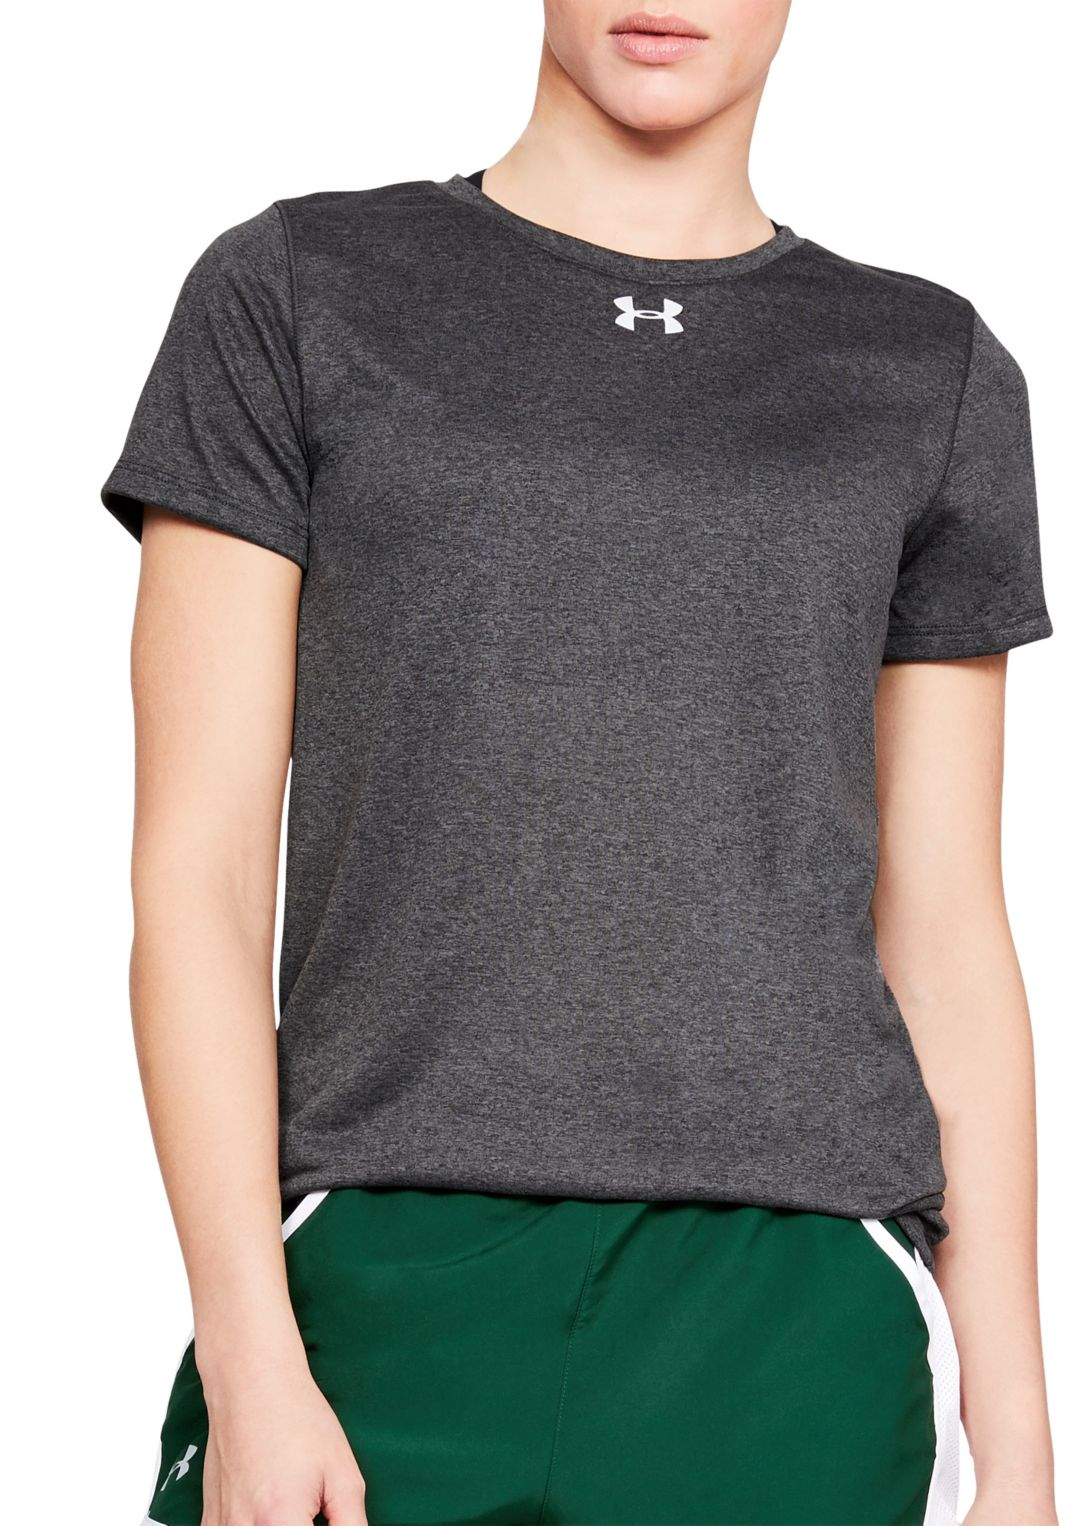 890e5b84 Under Armour Women's Locker 2.0 T-Shirt | DICK'S Sporting Goods